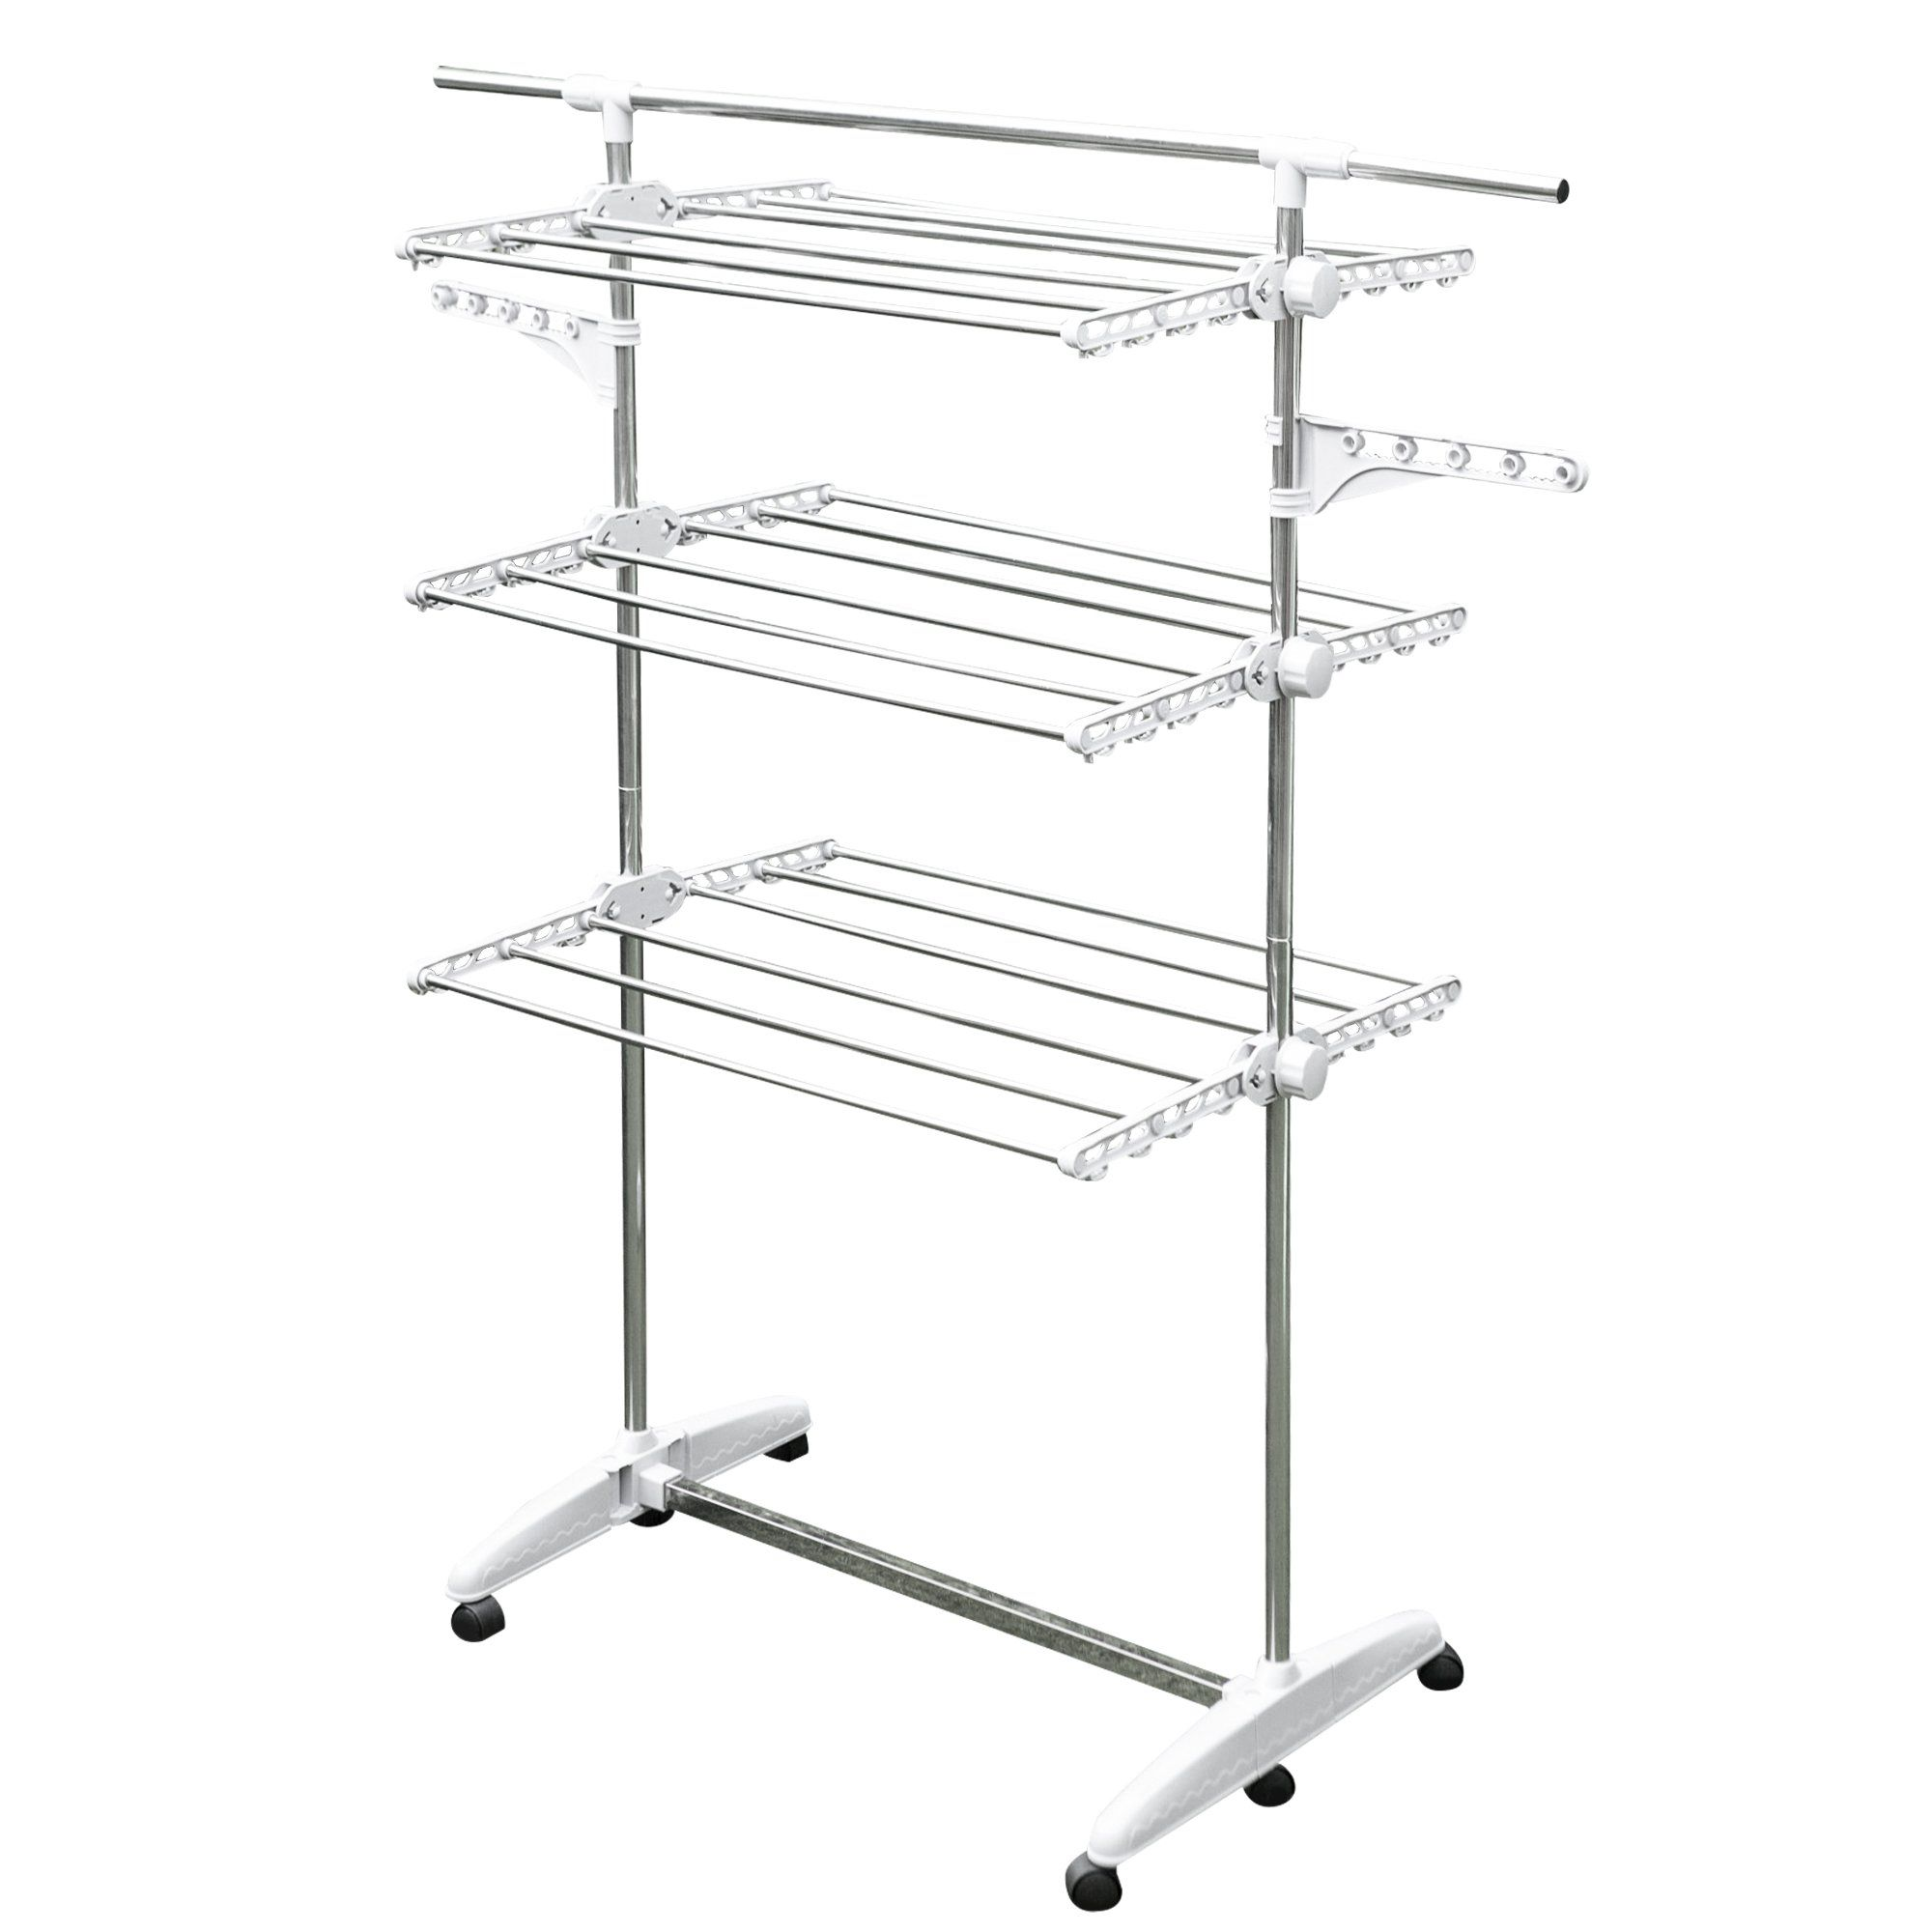 Stainless Drying Clothes Rack Portable Rolling Drying Rack For